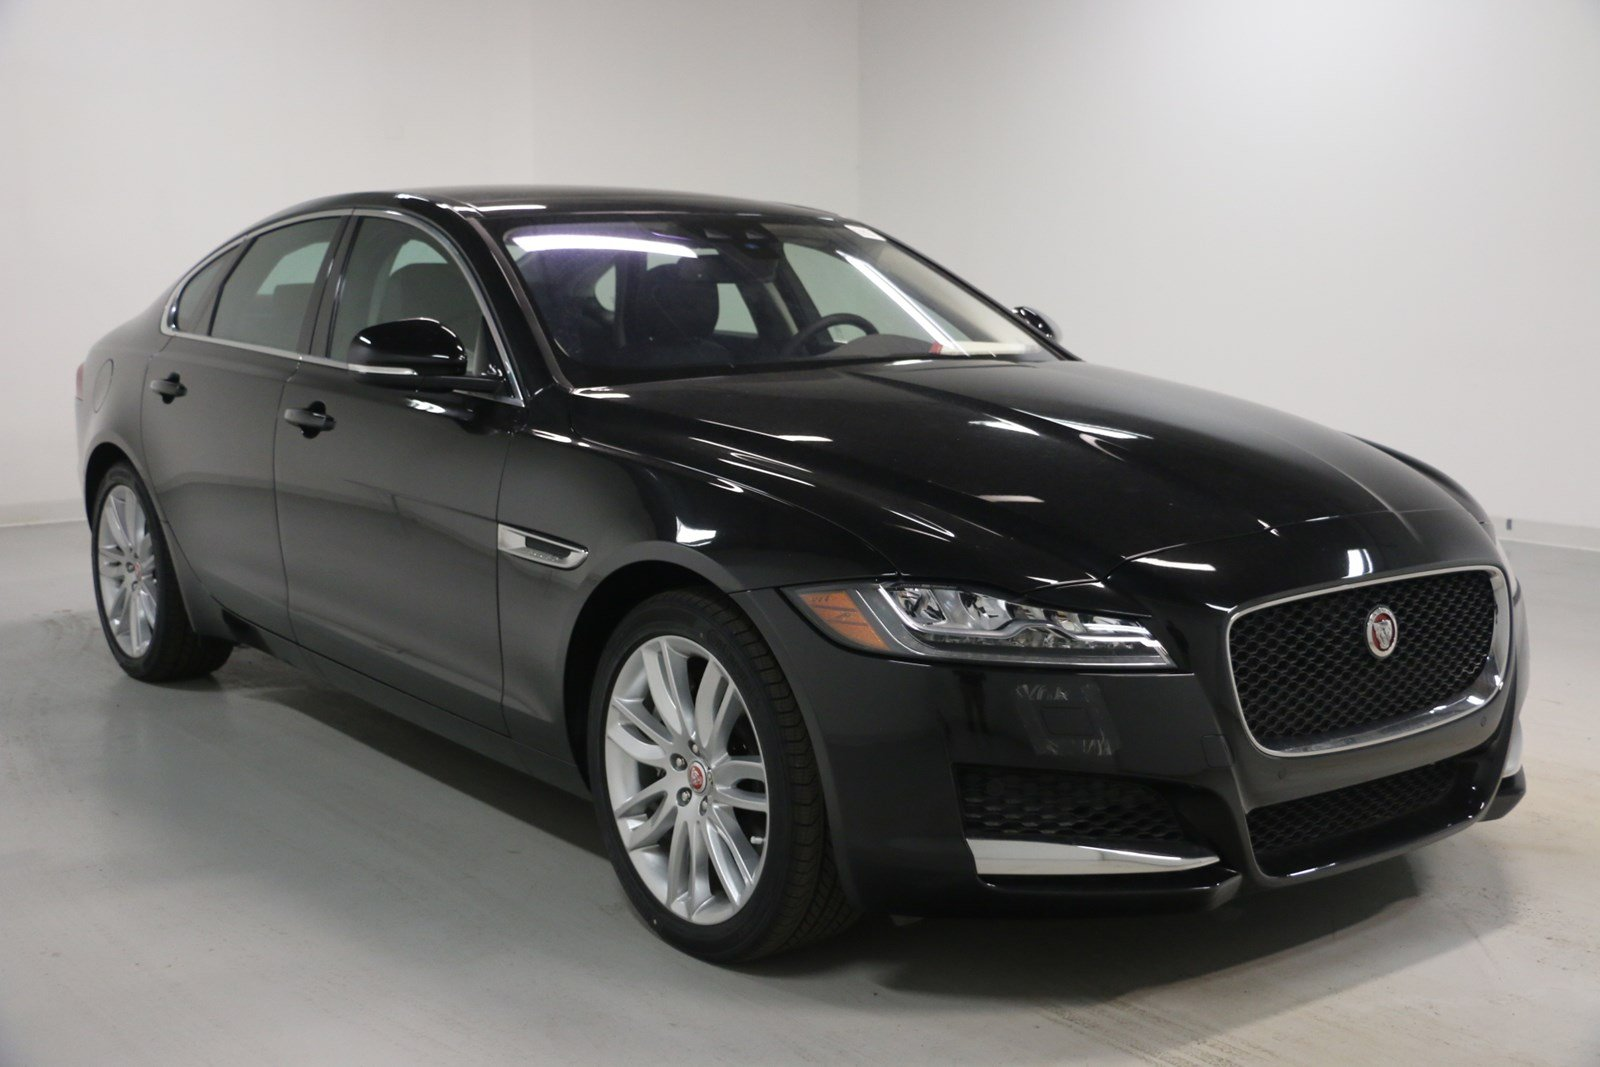 new 2018 jaguar xf 35t prestige 4dr car in elmhurst j1667 jaguar elmhurst. Black Bedroom Furniture Sets. Home Design Ideas